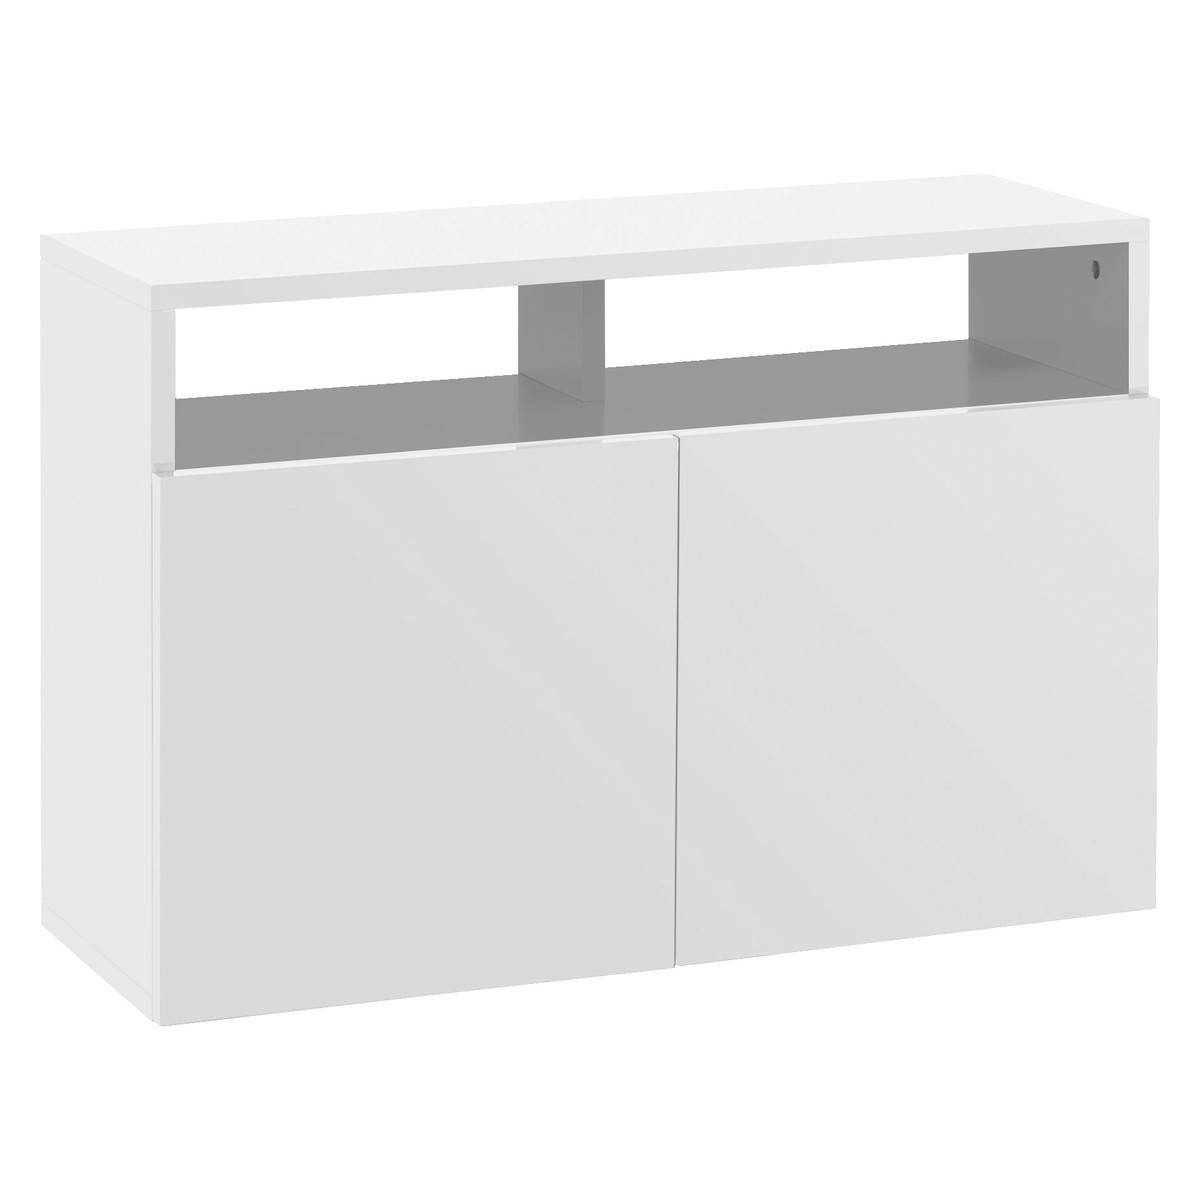 Kubrik White High Gloss Small Sideboard | Buy Now At Habitat Uk in White Sideboards (Image 10 of 30)